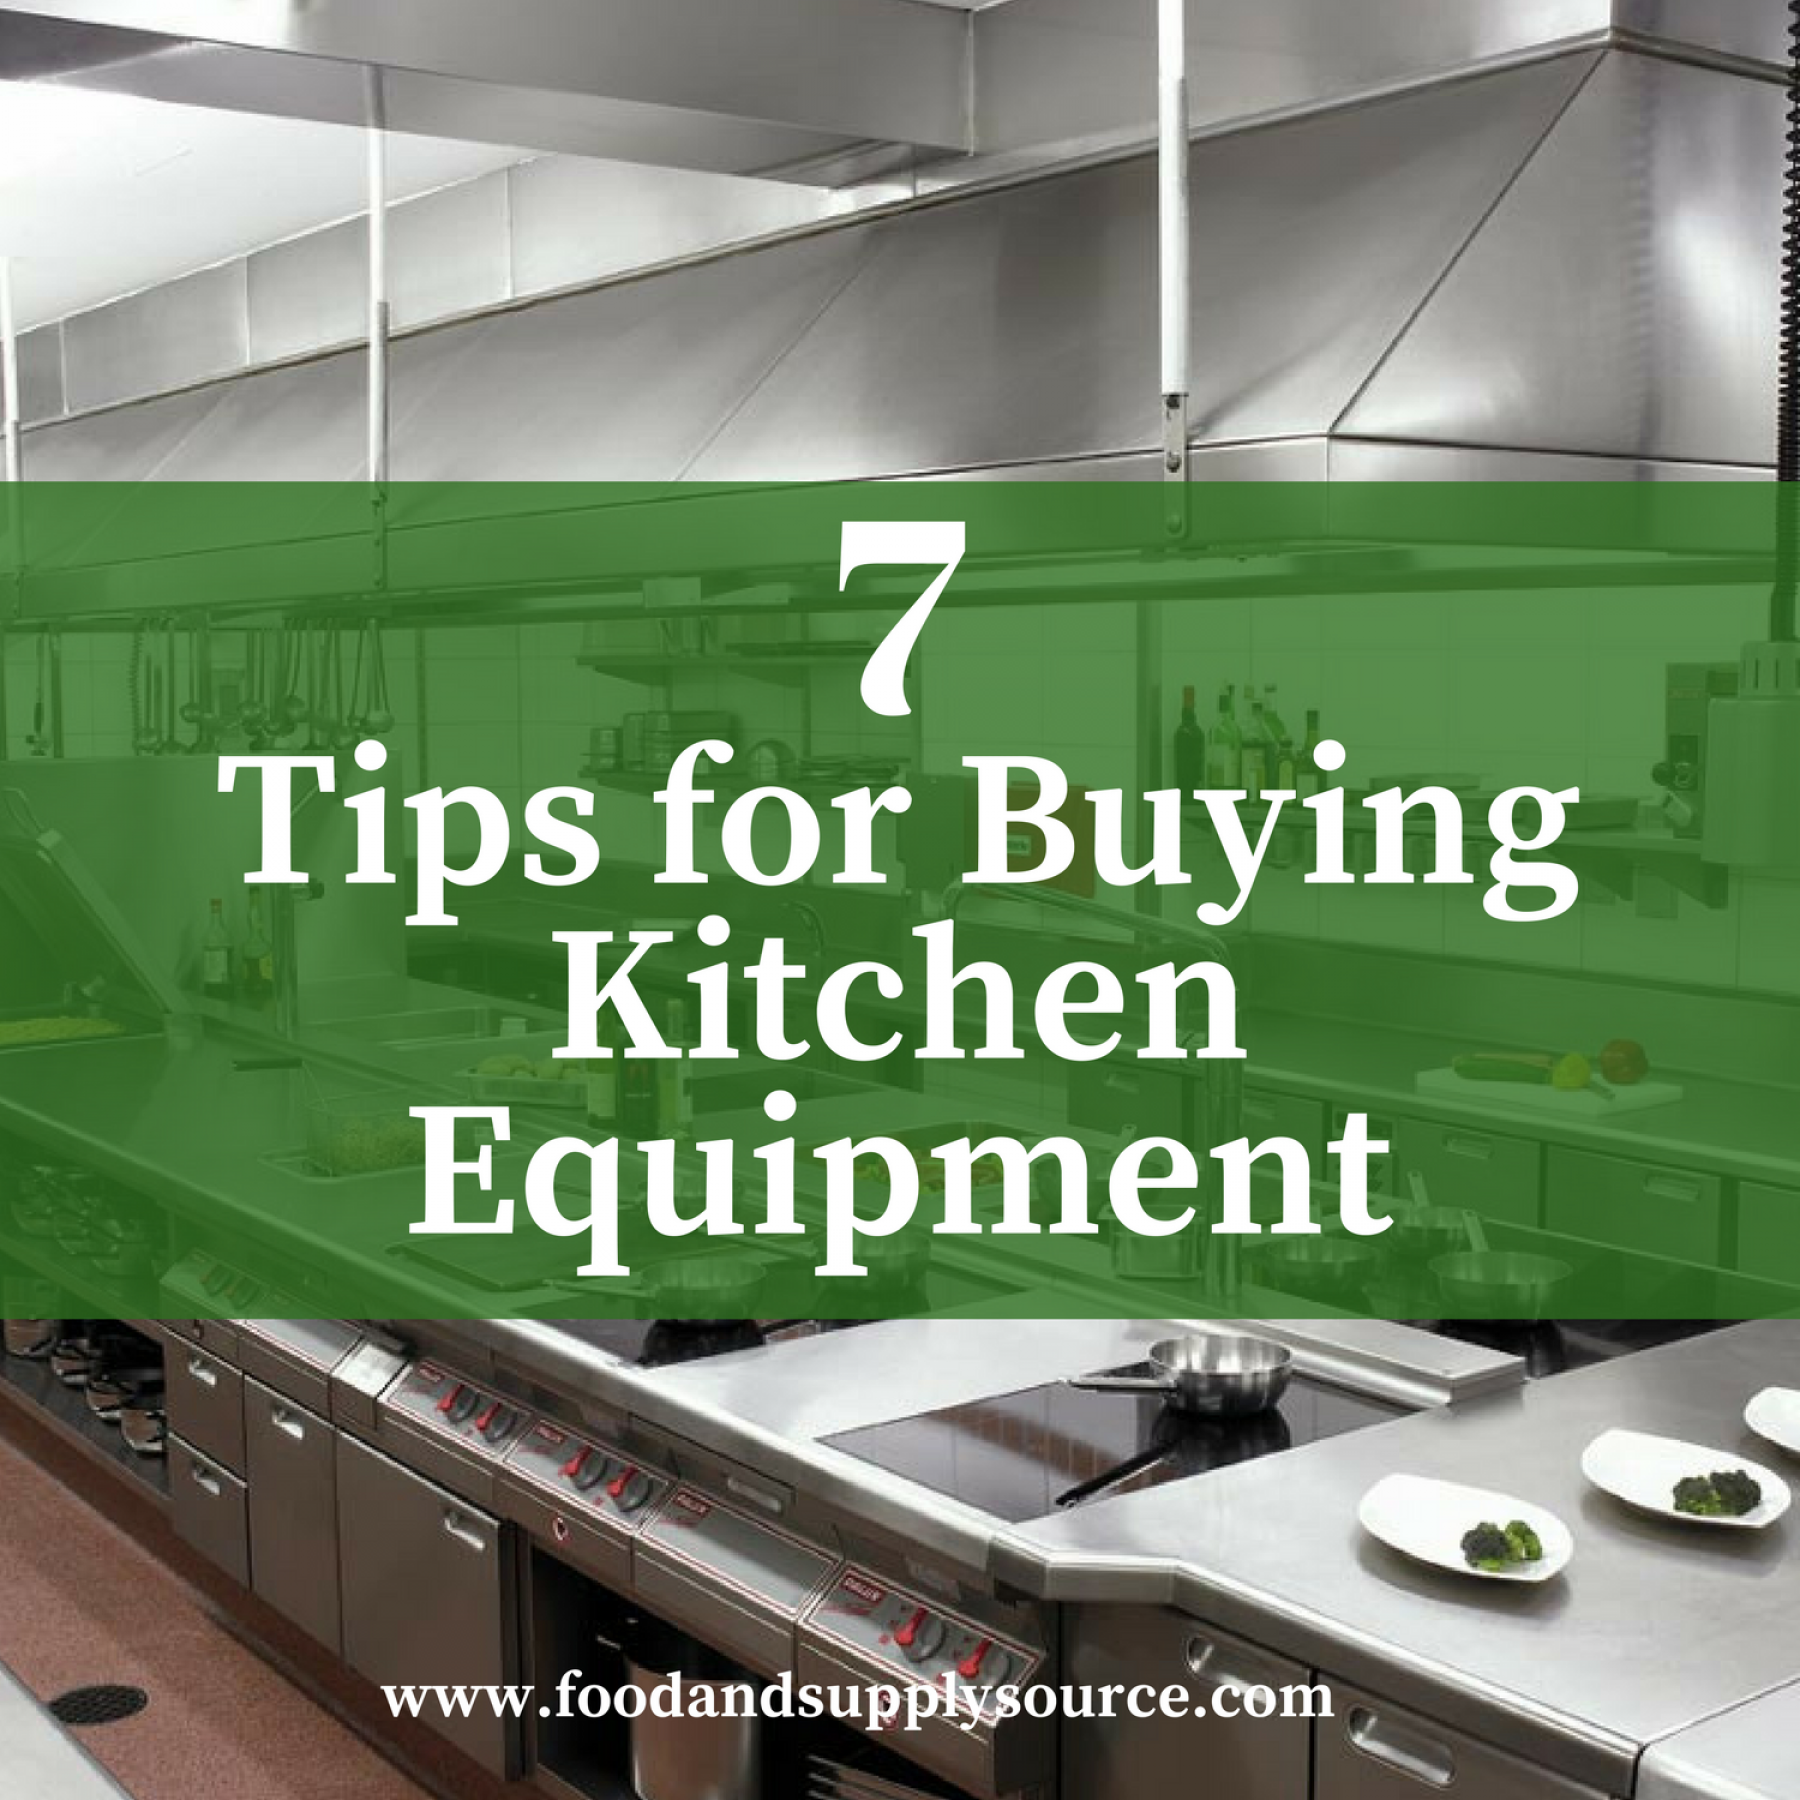 7 Tips for Buying Kitchen Equipment